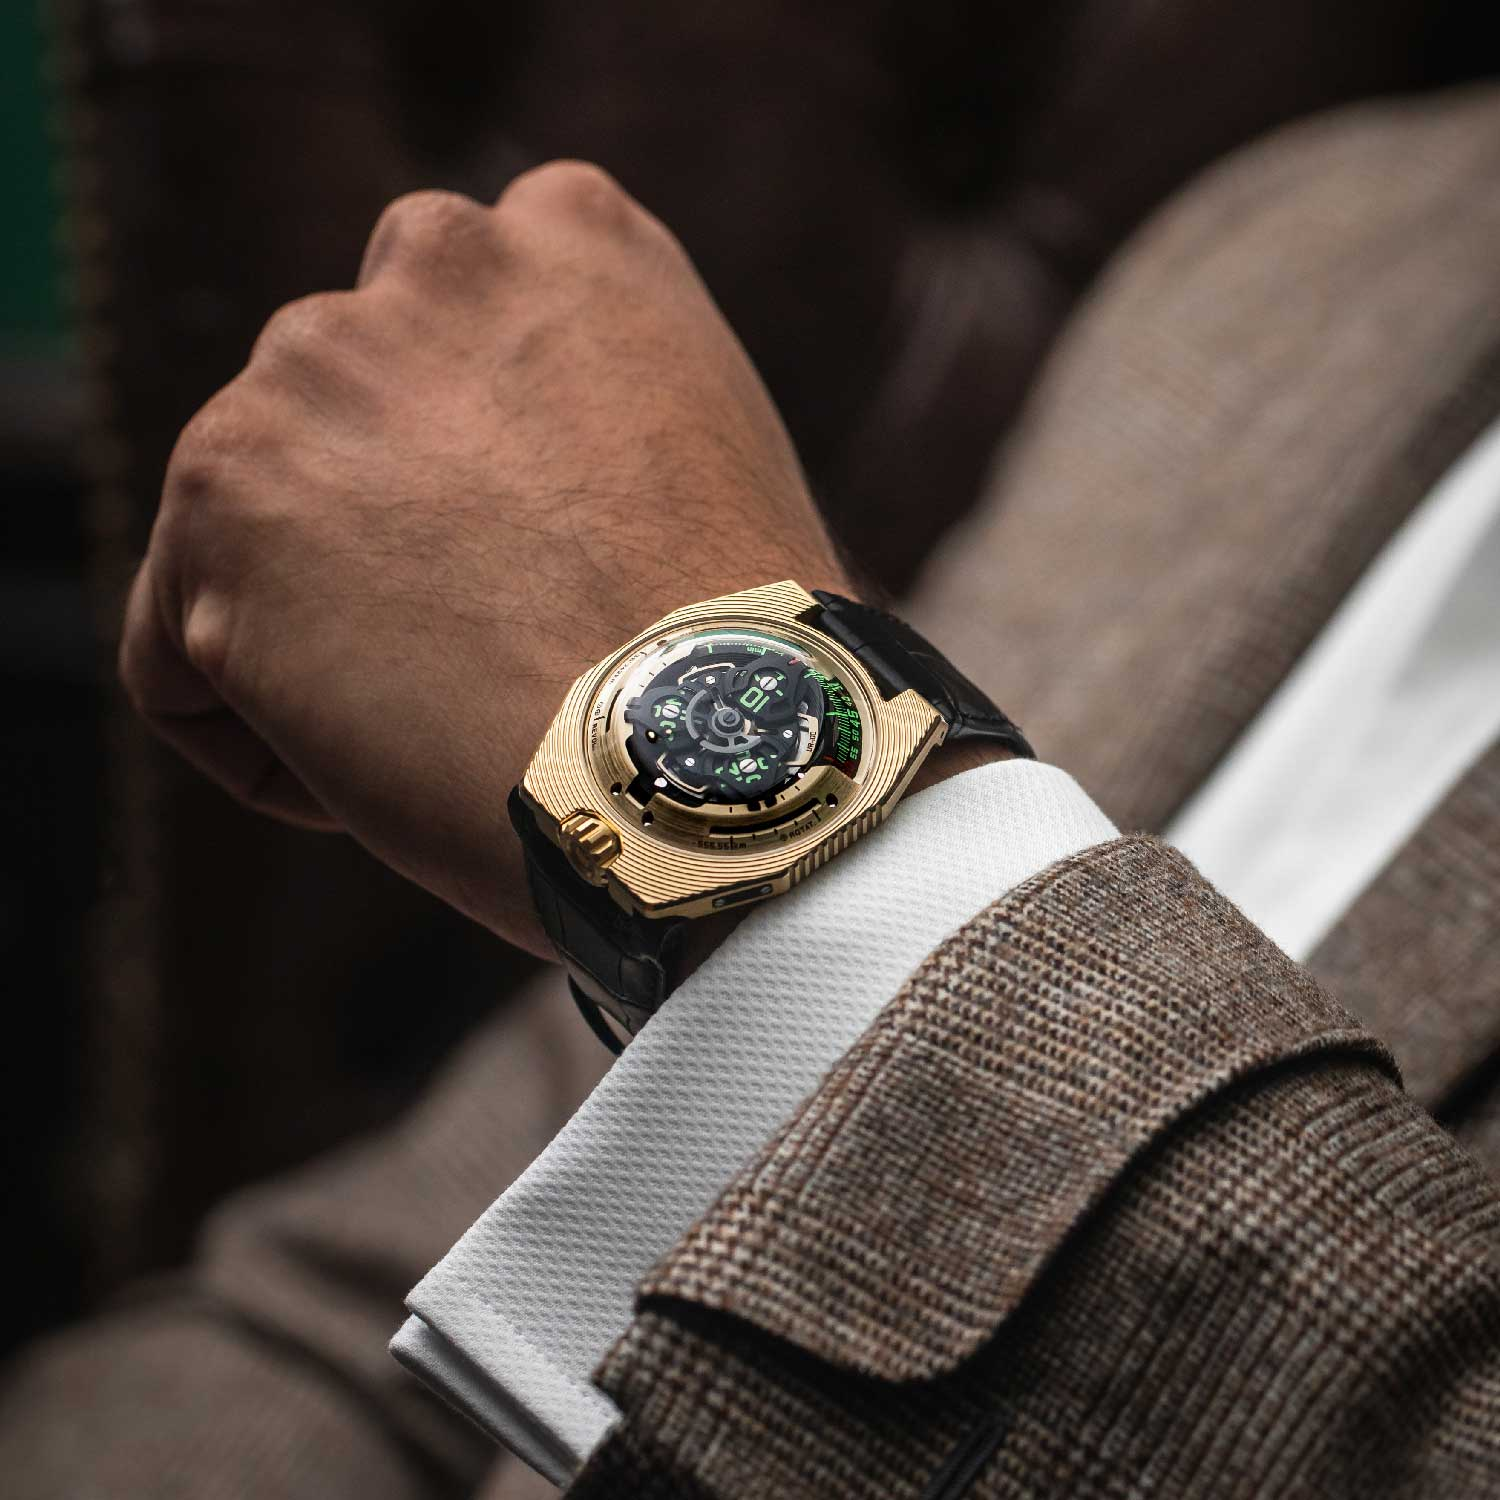 This 25-piece edition has a 41mm case made of this lustrous organic gold and scratch resistant palladium alloy.